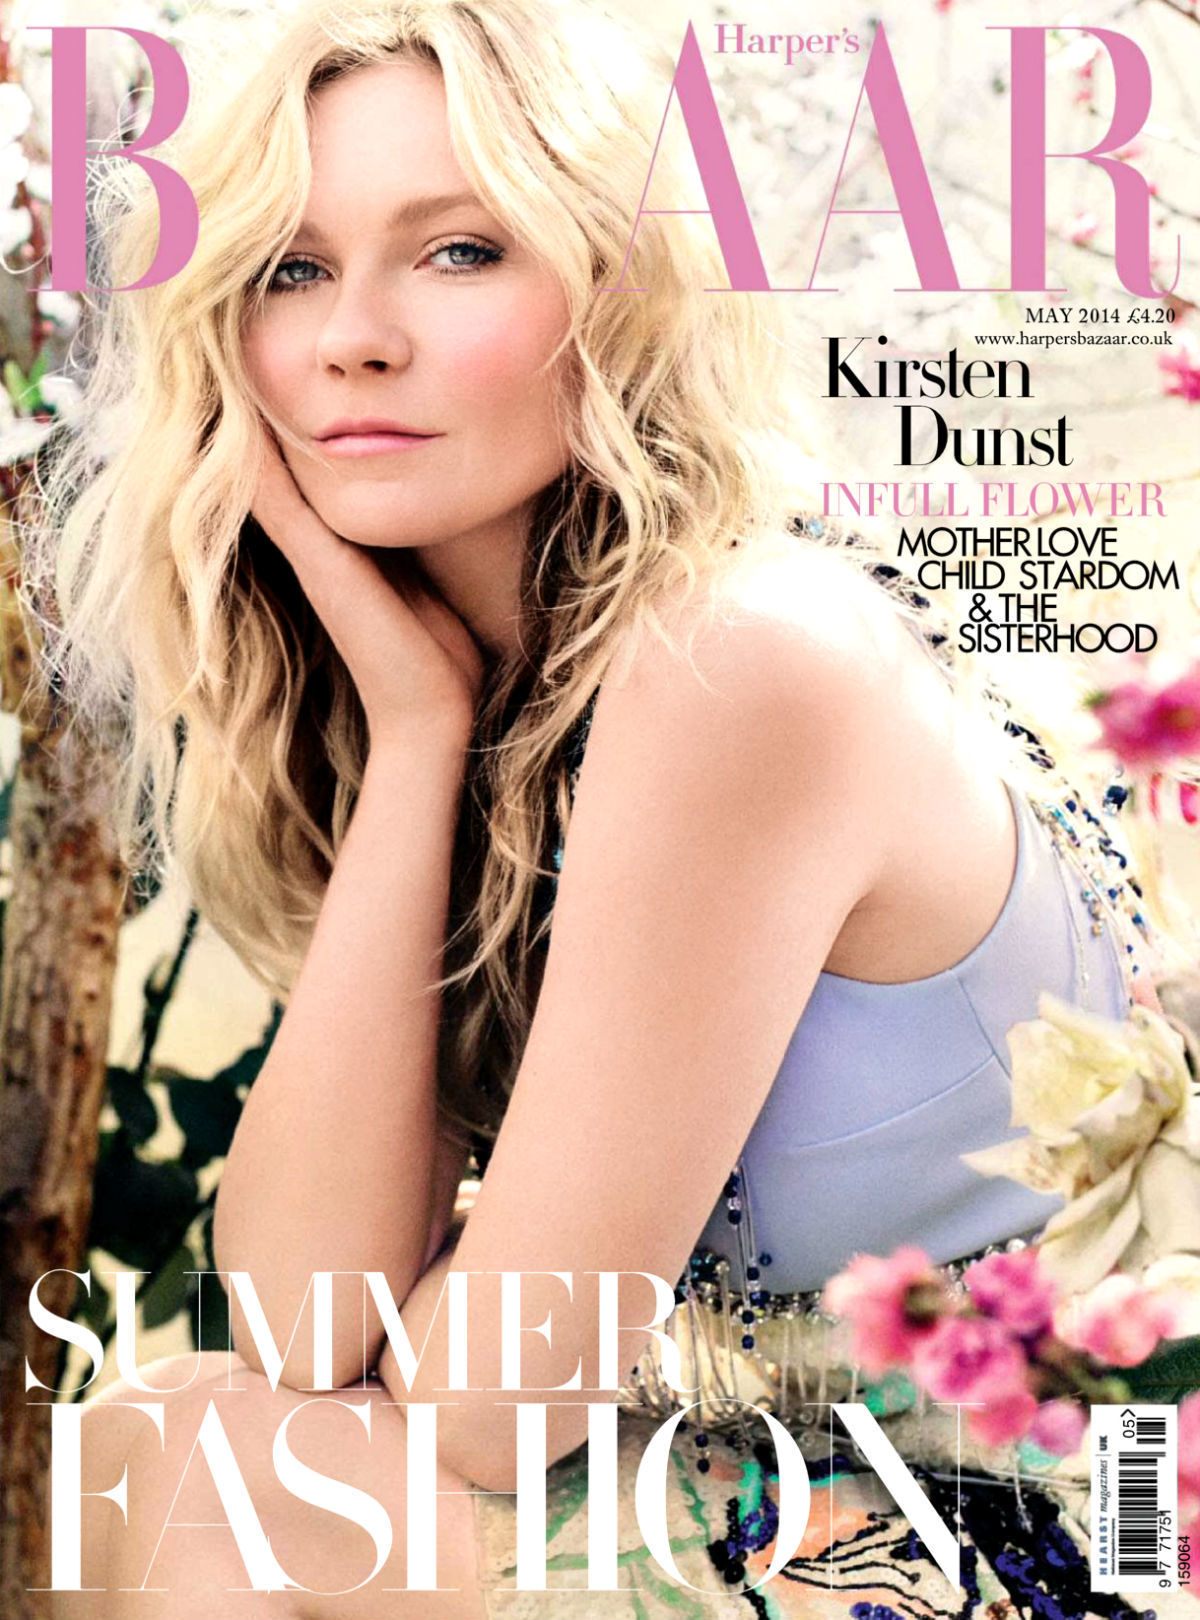 GOOD: Kirsten Dunst On Harper's Bazaar U.K.